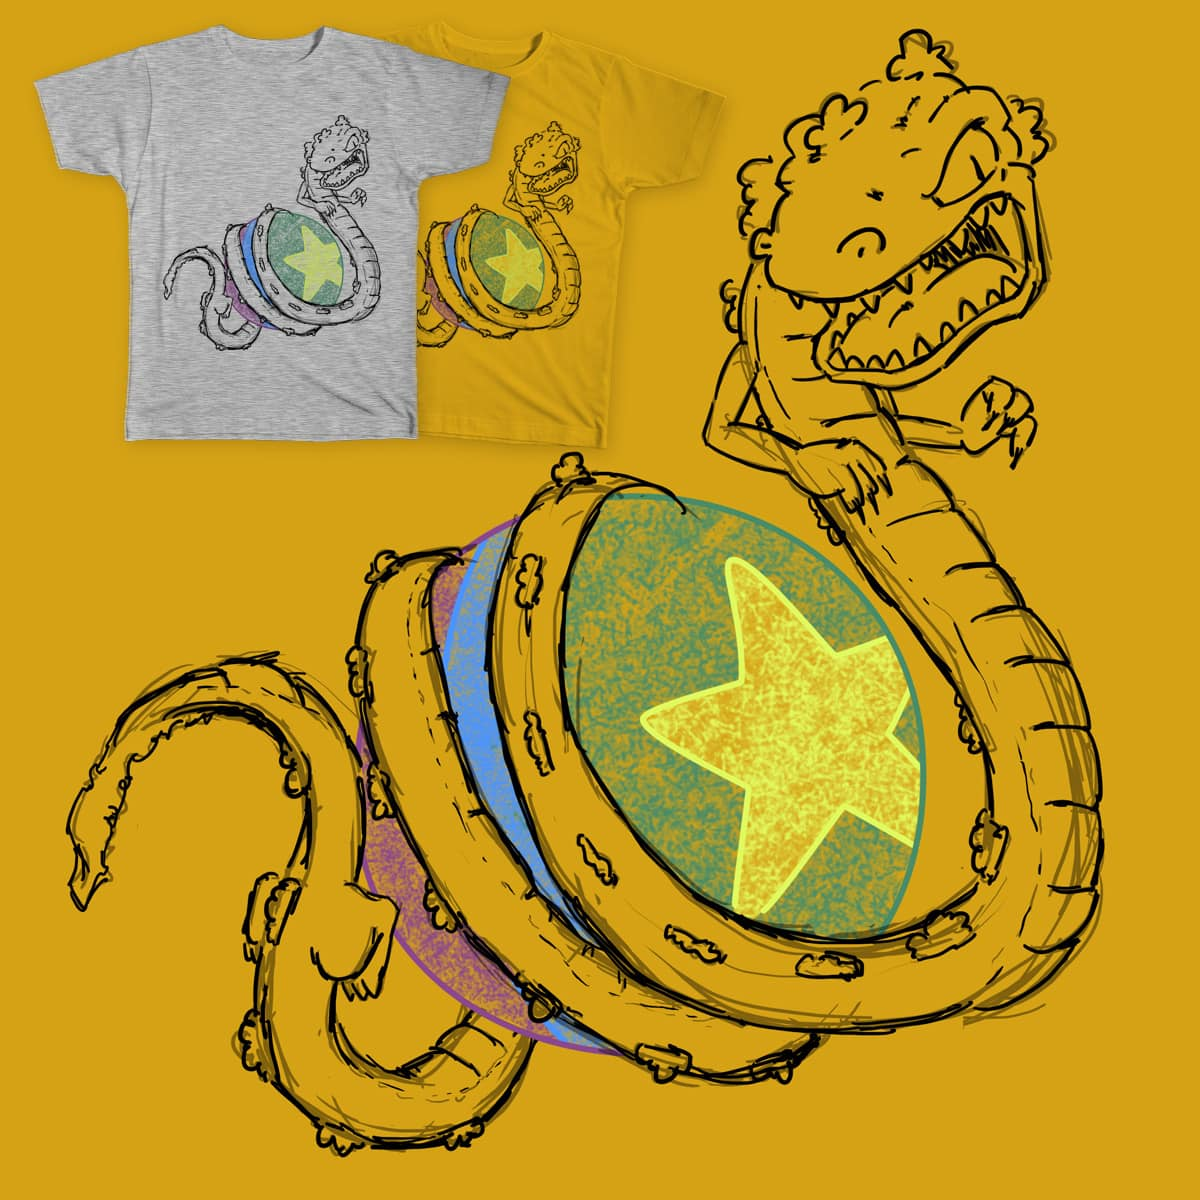 ReptarBall Z by DaemonCorps on Threadless